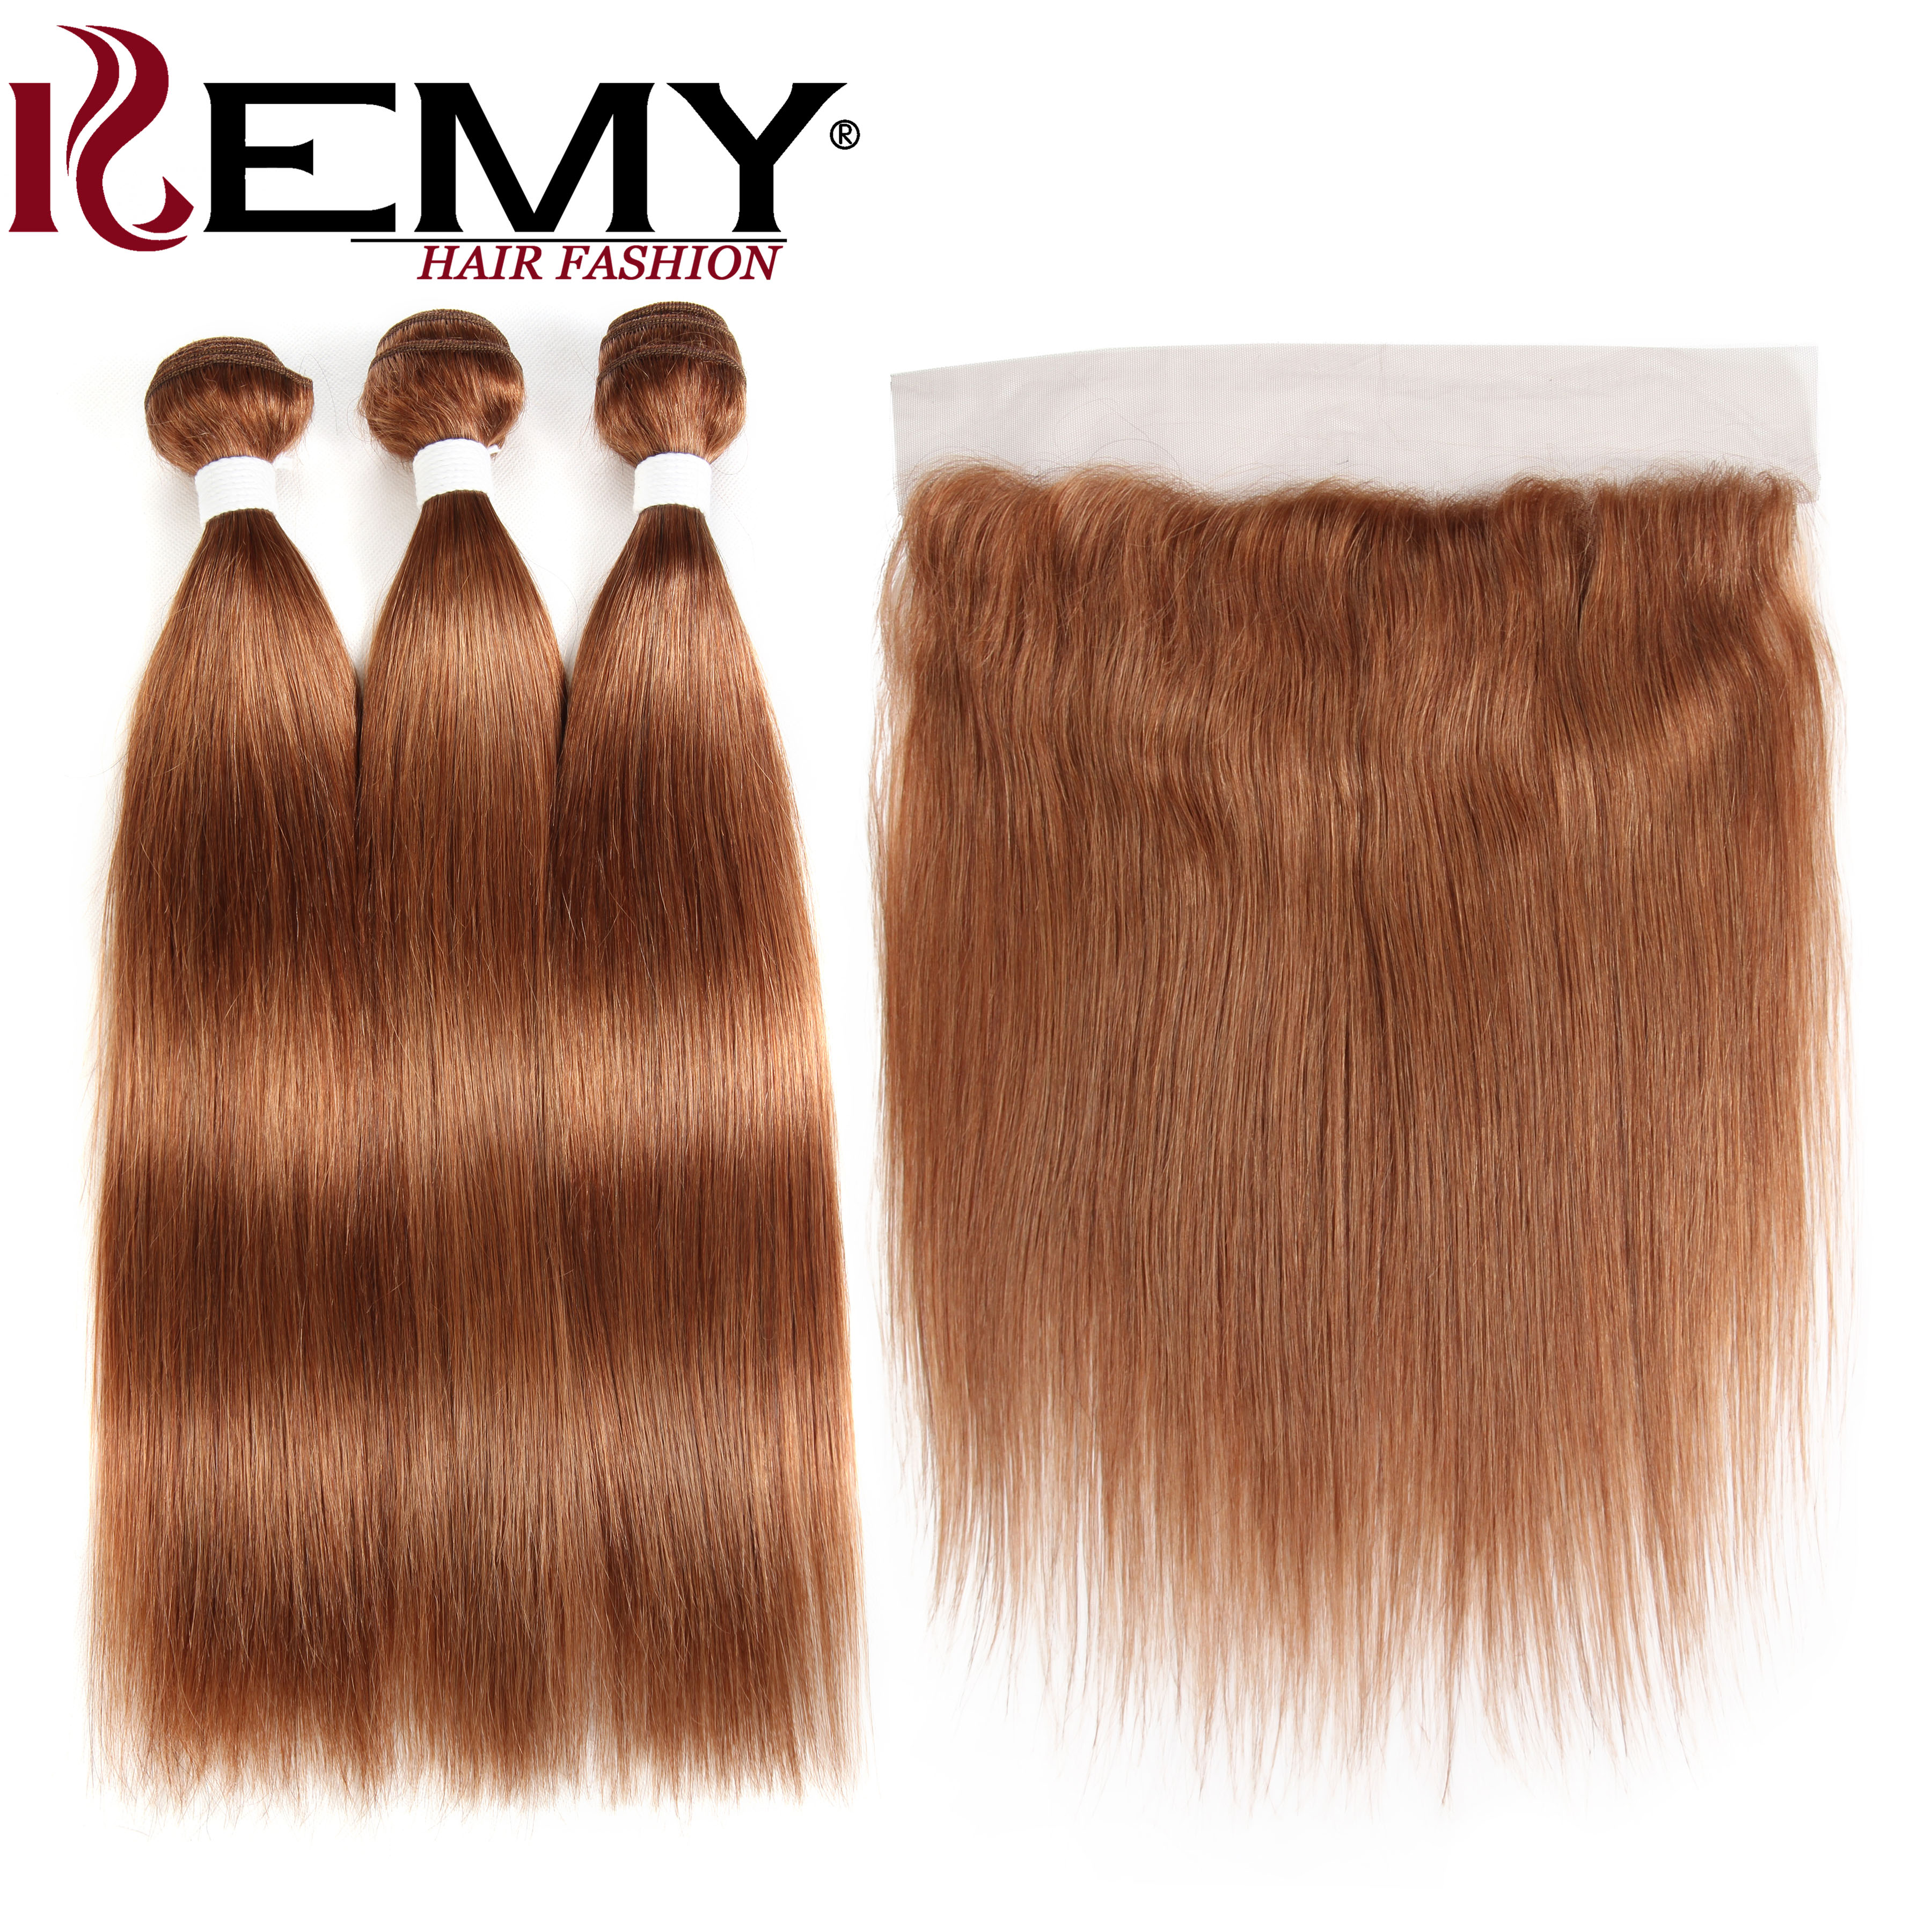 Brazilian Straight Human Hair Bundles With Frontal 4*13 KEMY HAIR Pre-Colored Brown Hair Weaves Bundles With Closure Non-Remy